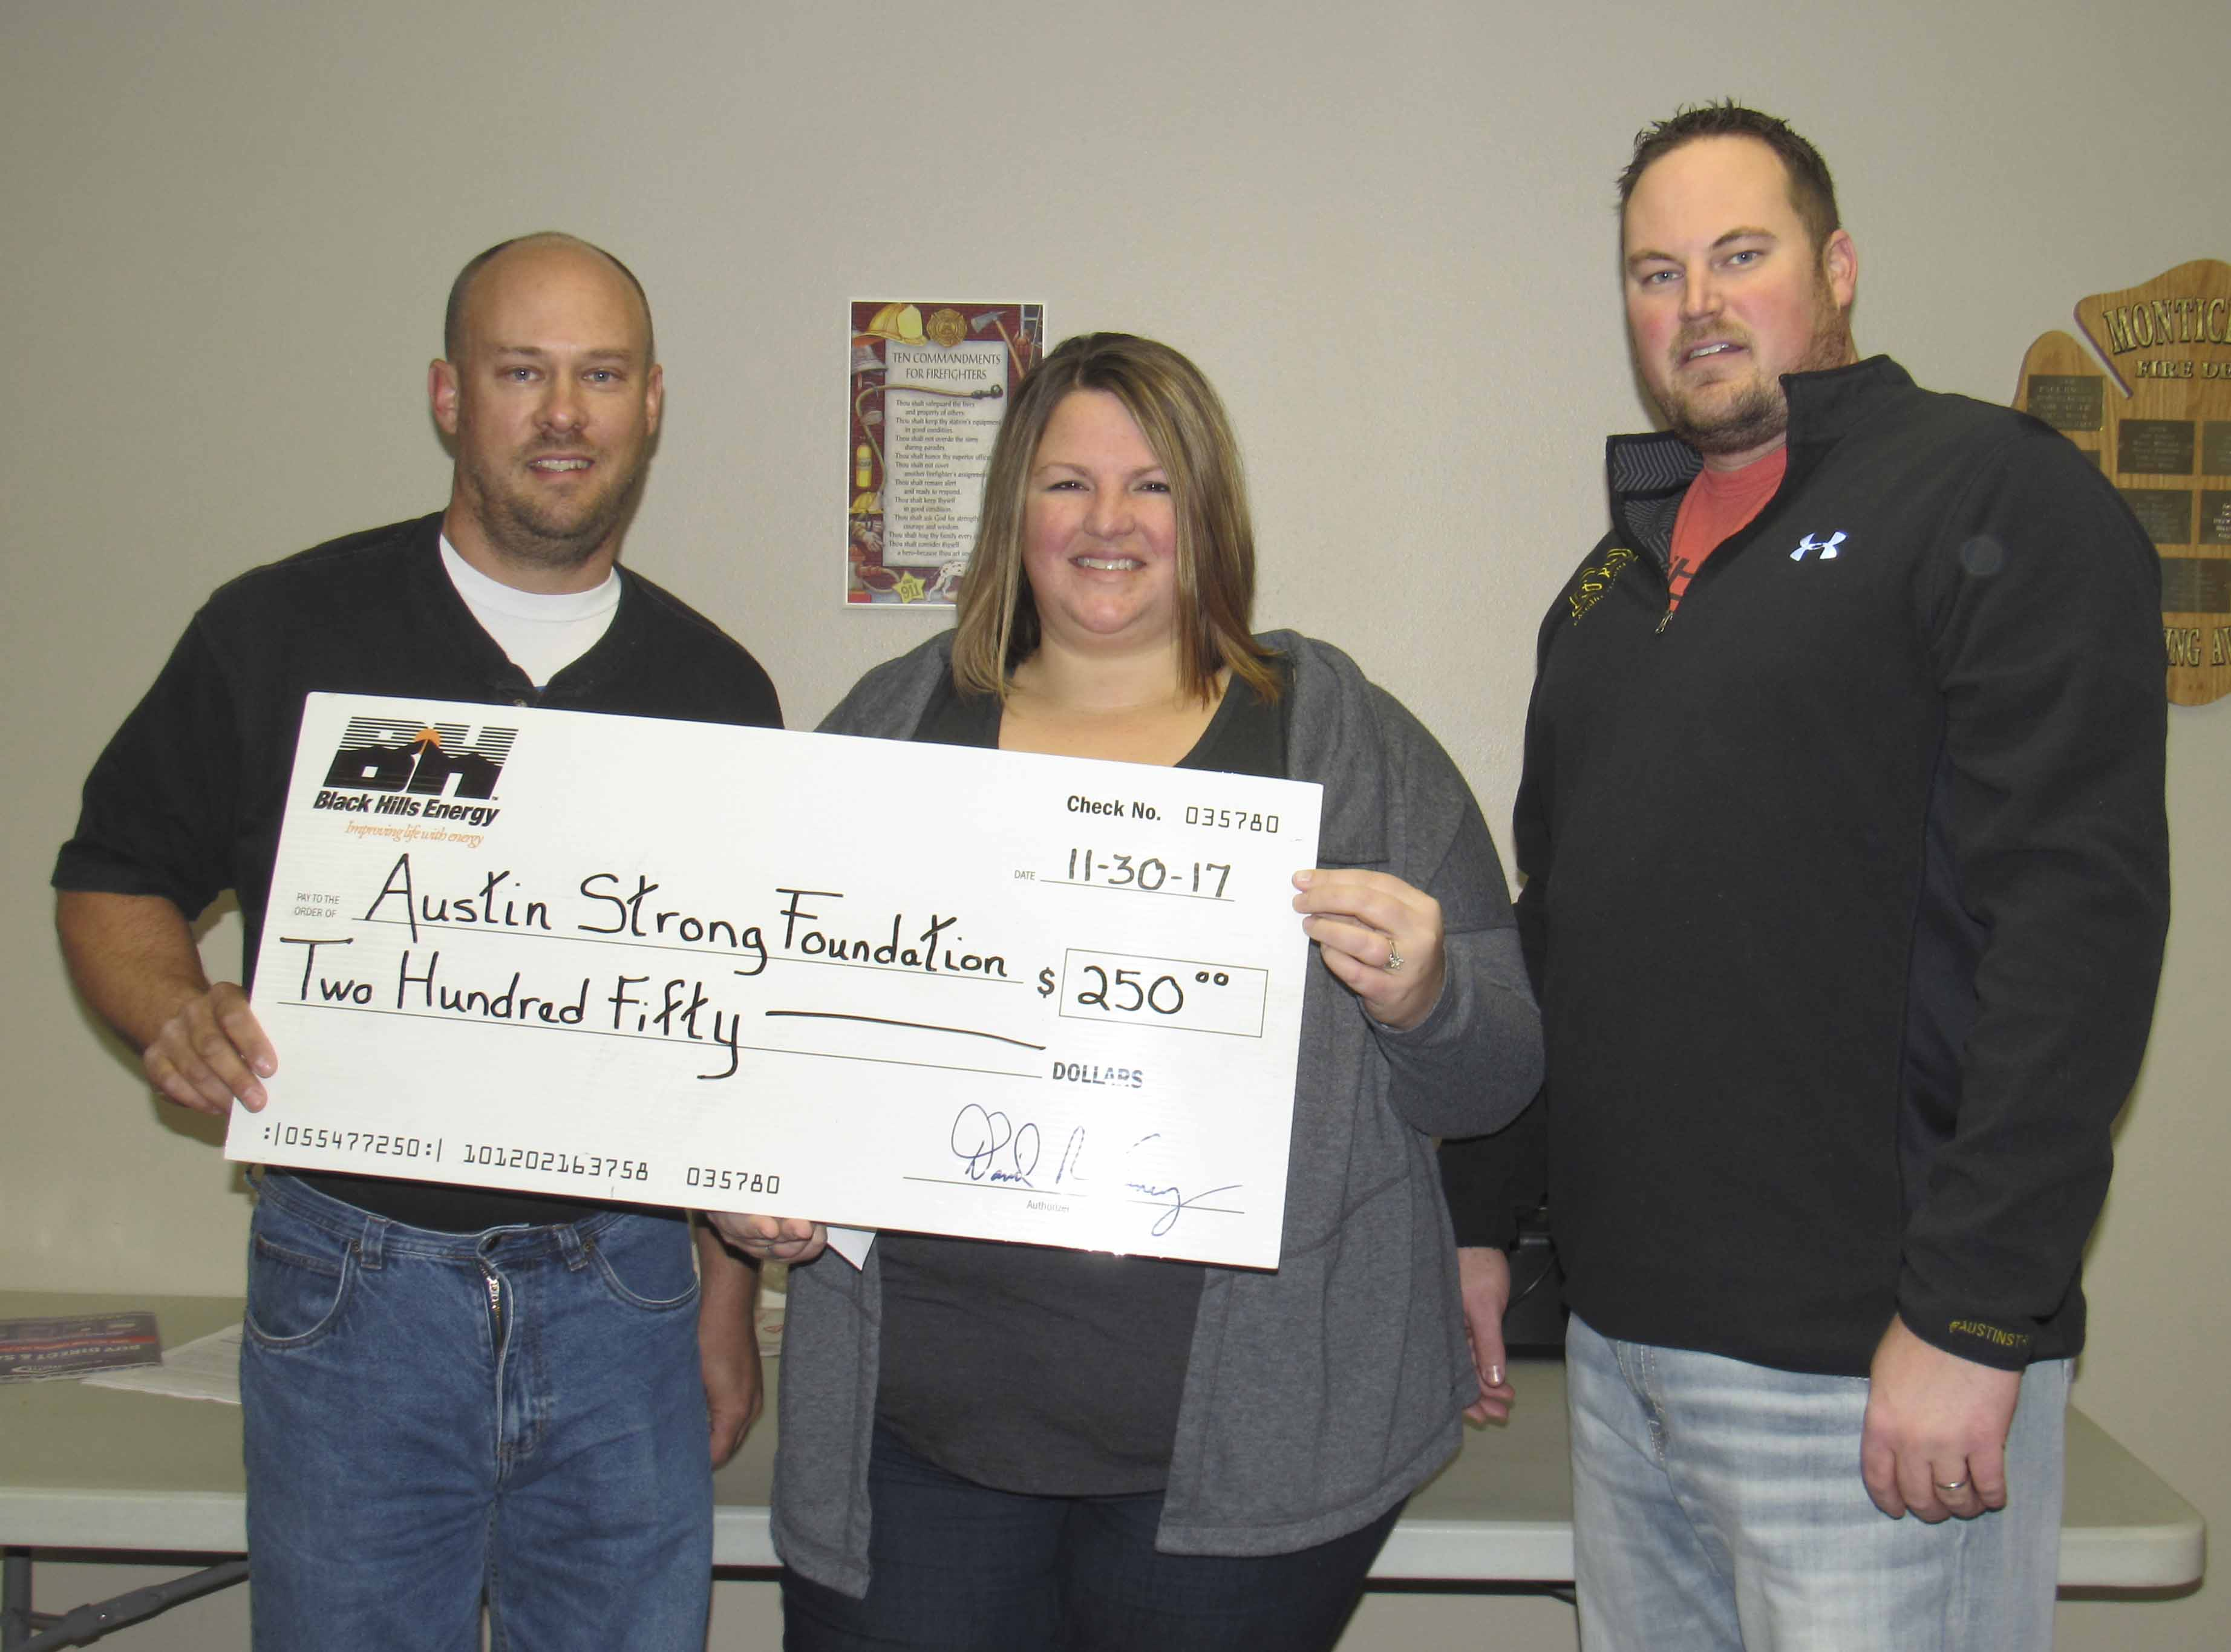 Black Hills Energy Service tech Brian Kearney selected the Austin Strong Foundation as the recipient of a $250 donation. The Foundation was created in Austin Smith's name to help fight childhood cancer. From left are Kearney and Austin's parents Mikinzie and Britt Smith. (Photo by Kim Brooks)